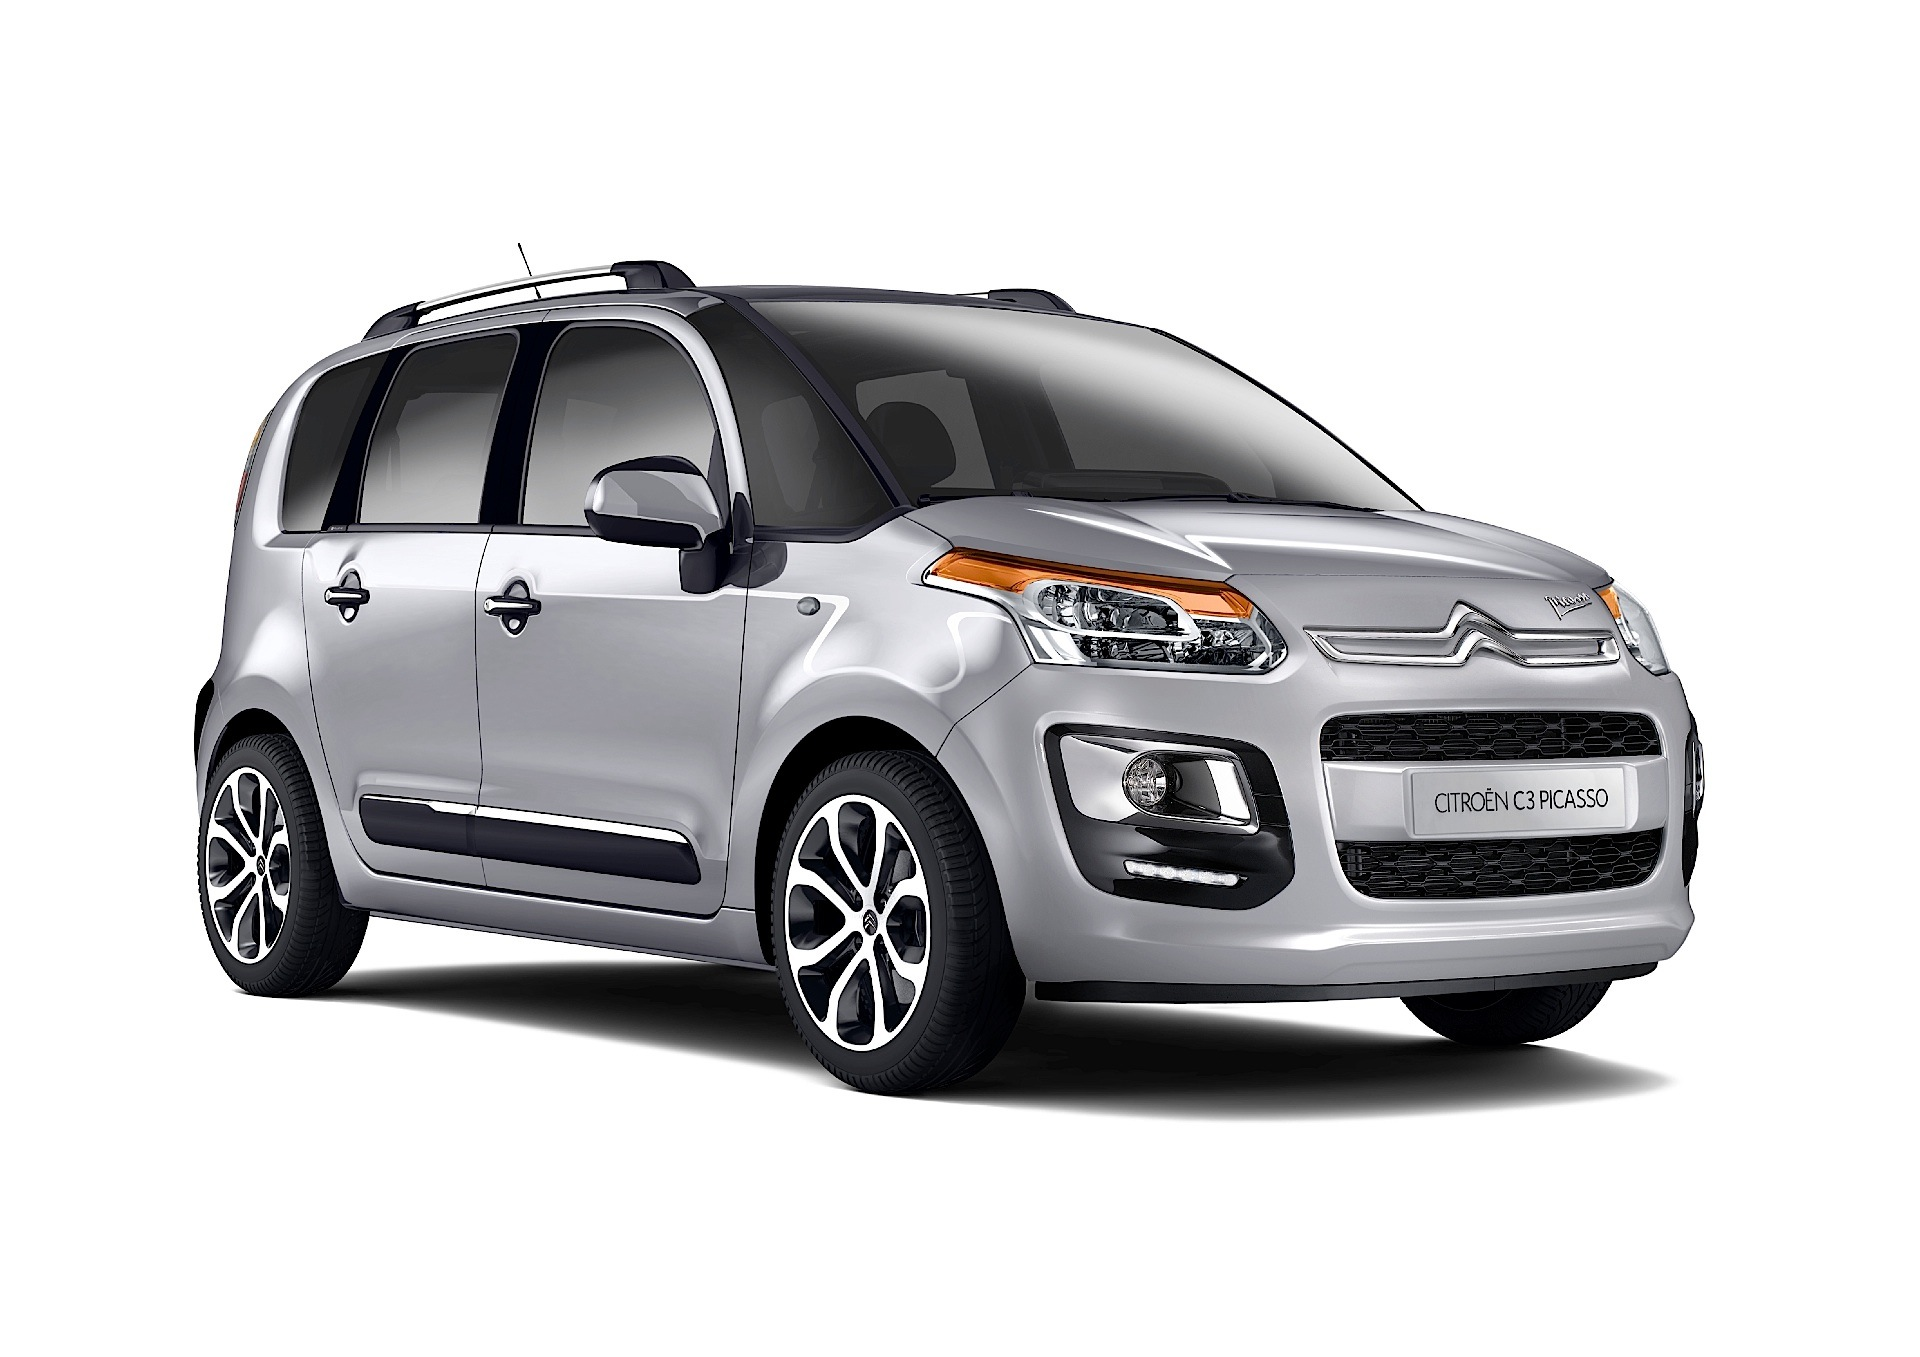 citroen c3 picasso specs 2013 2014 2015 2016 2017 2018 autoevolution. Black Bedroom Furniture Sets. Home Design Ideas